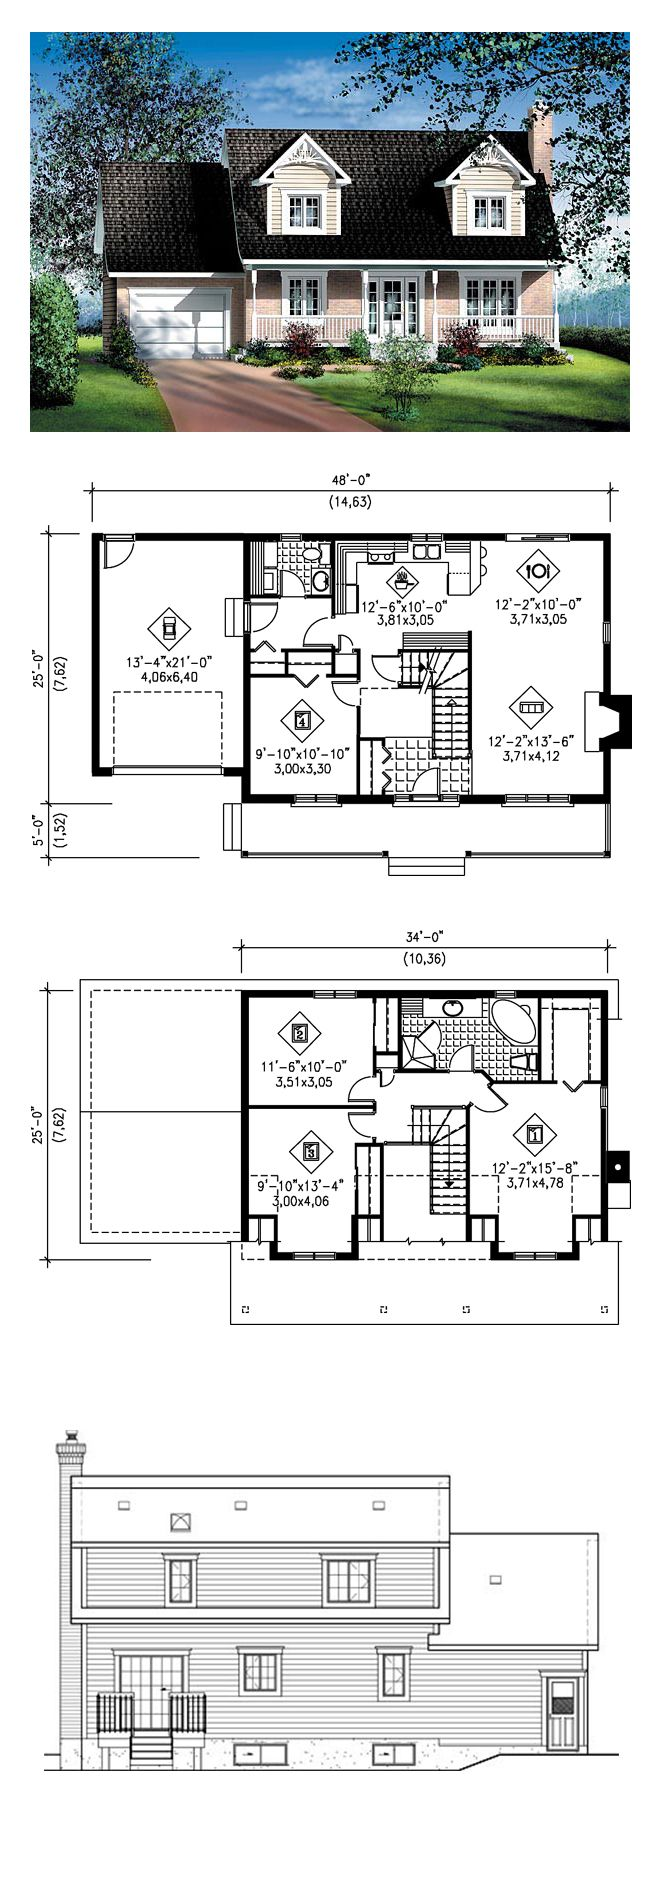 Cape cod house plan 49687 total living area 1564 sq ft for Cape plans